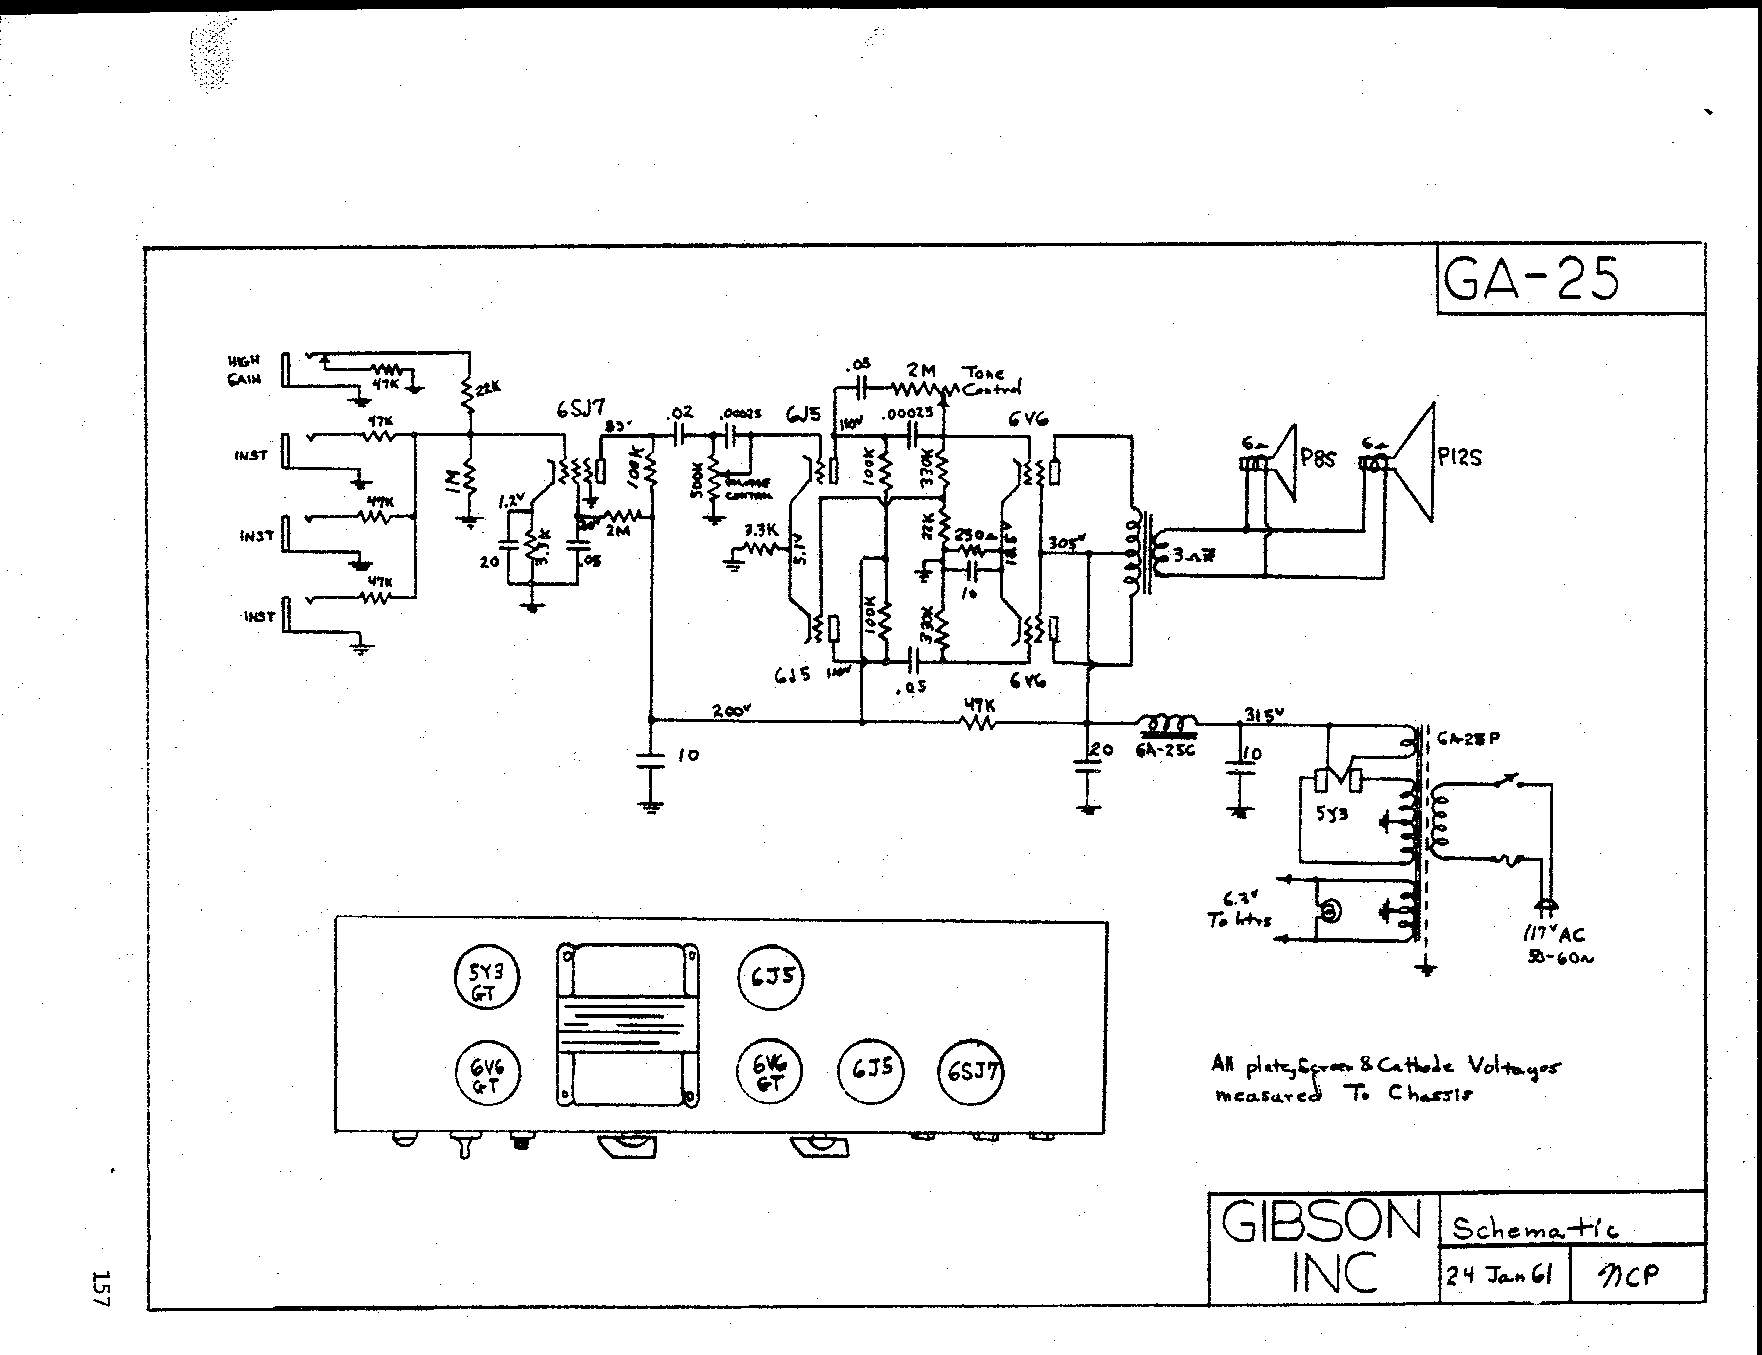 4 Elm Light Wiring Diagram - Wiring Diagram Mega  Elm Light Wiring Diagram on light body diagram, light electrical wiring, light electrical diagram, light transmission diagram, http diagram, parking lights diagram, 2 lights 2 switches diagram, 2004 acura tl fuse box diagram, 2007 ford f-150 fuse box diagram, ford bronco fuse box diagram, light thermostat diagram, 2004 pontiac grand prix fuse box diagram, circuit diagram, light bulbs diagram, light switch, light installation diagram, 1994 mazda b4000 fuse panel diagram, light roof diagram, light bar diagram, light wiring parts,